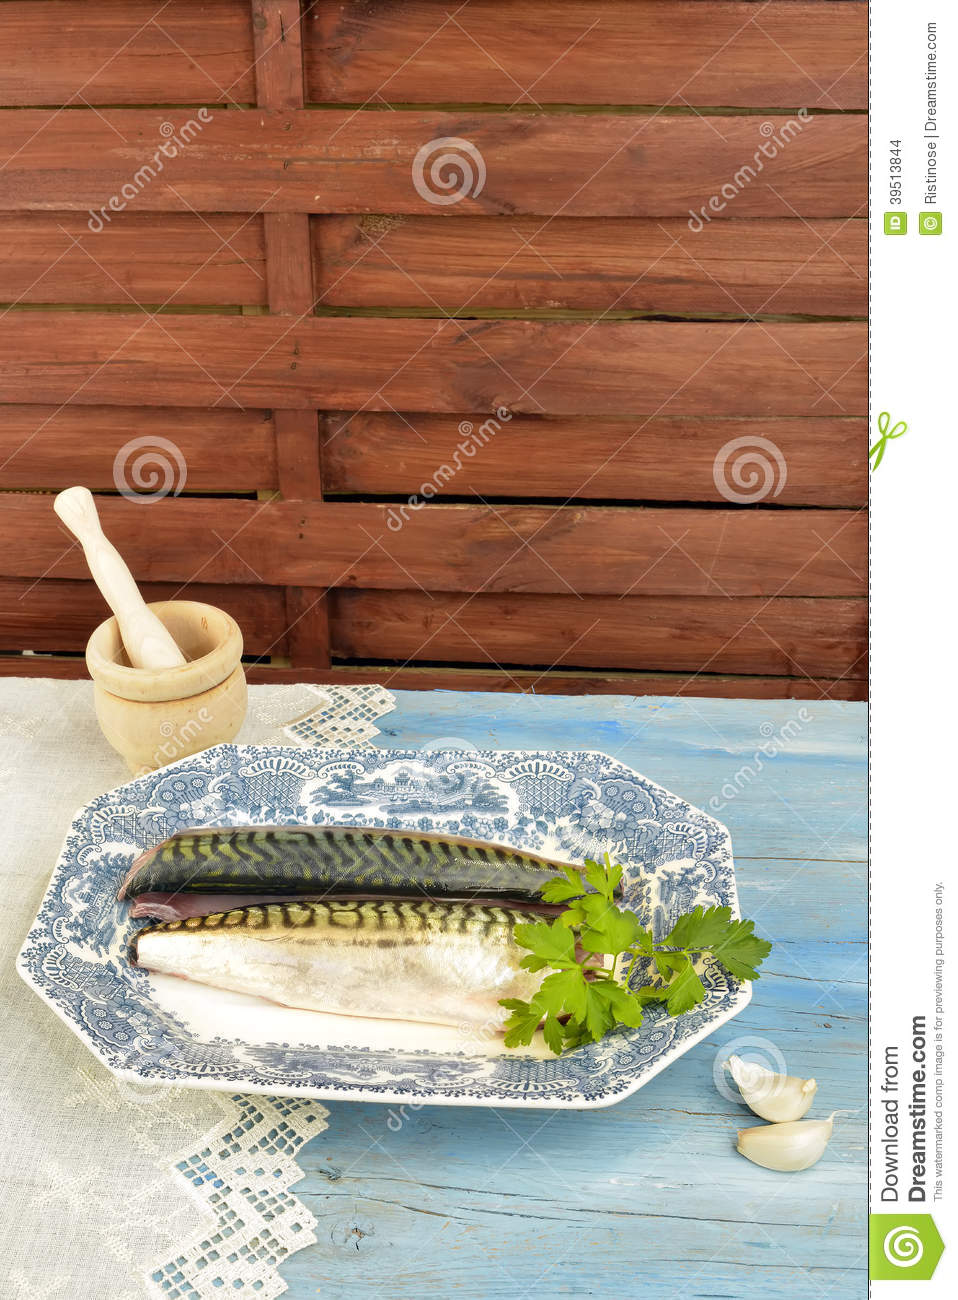 Fish tray with parsley and garlic